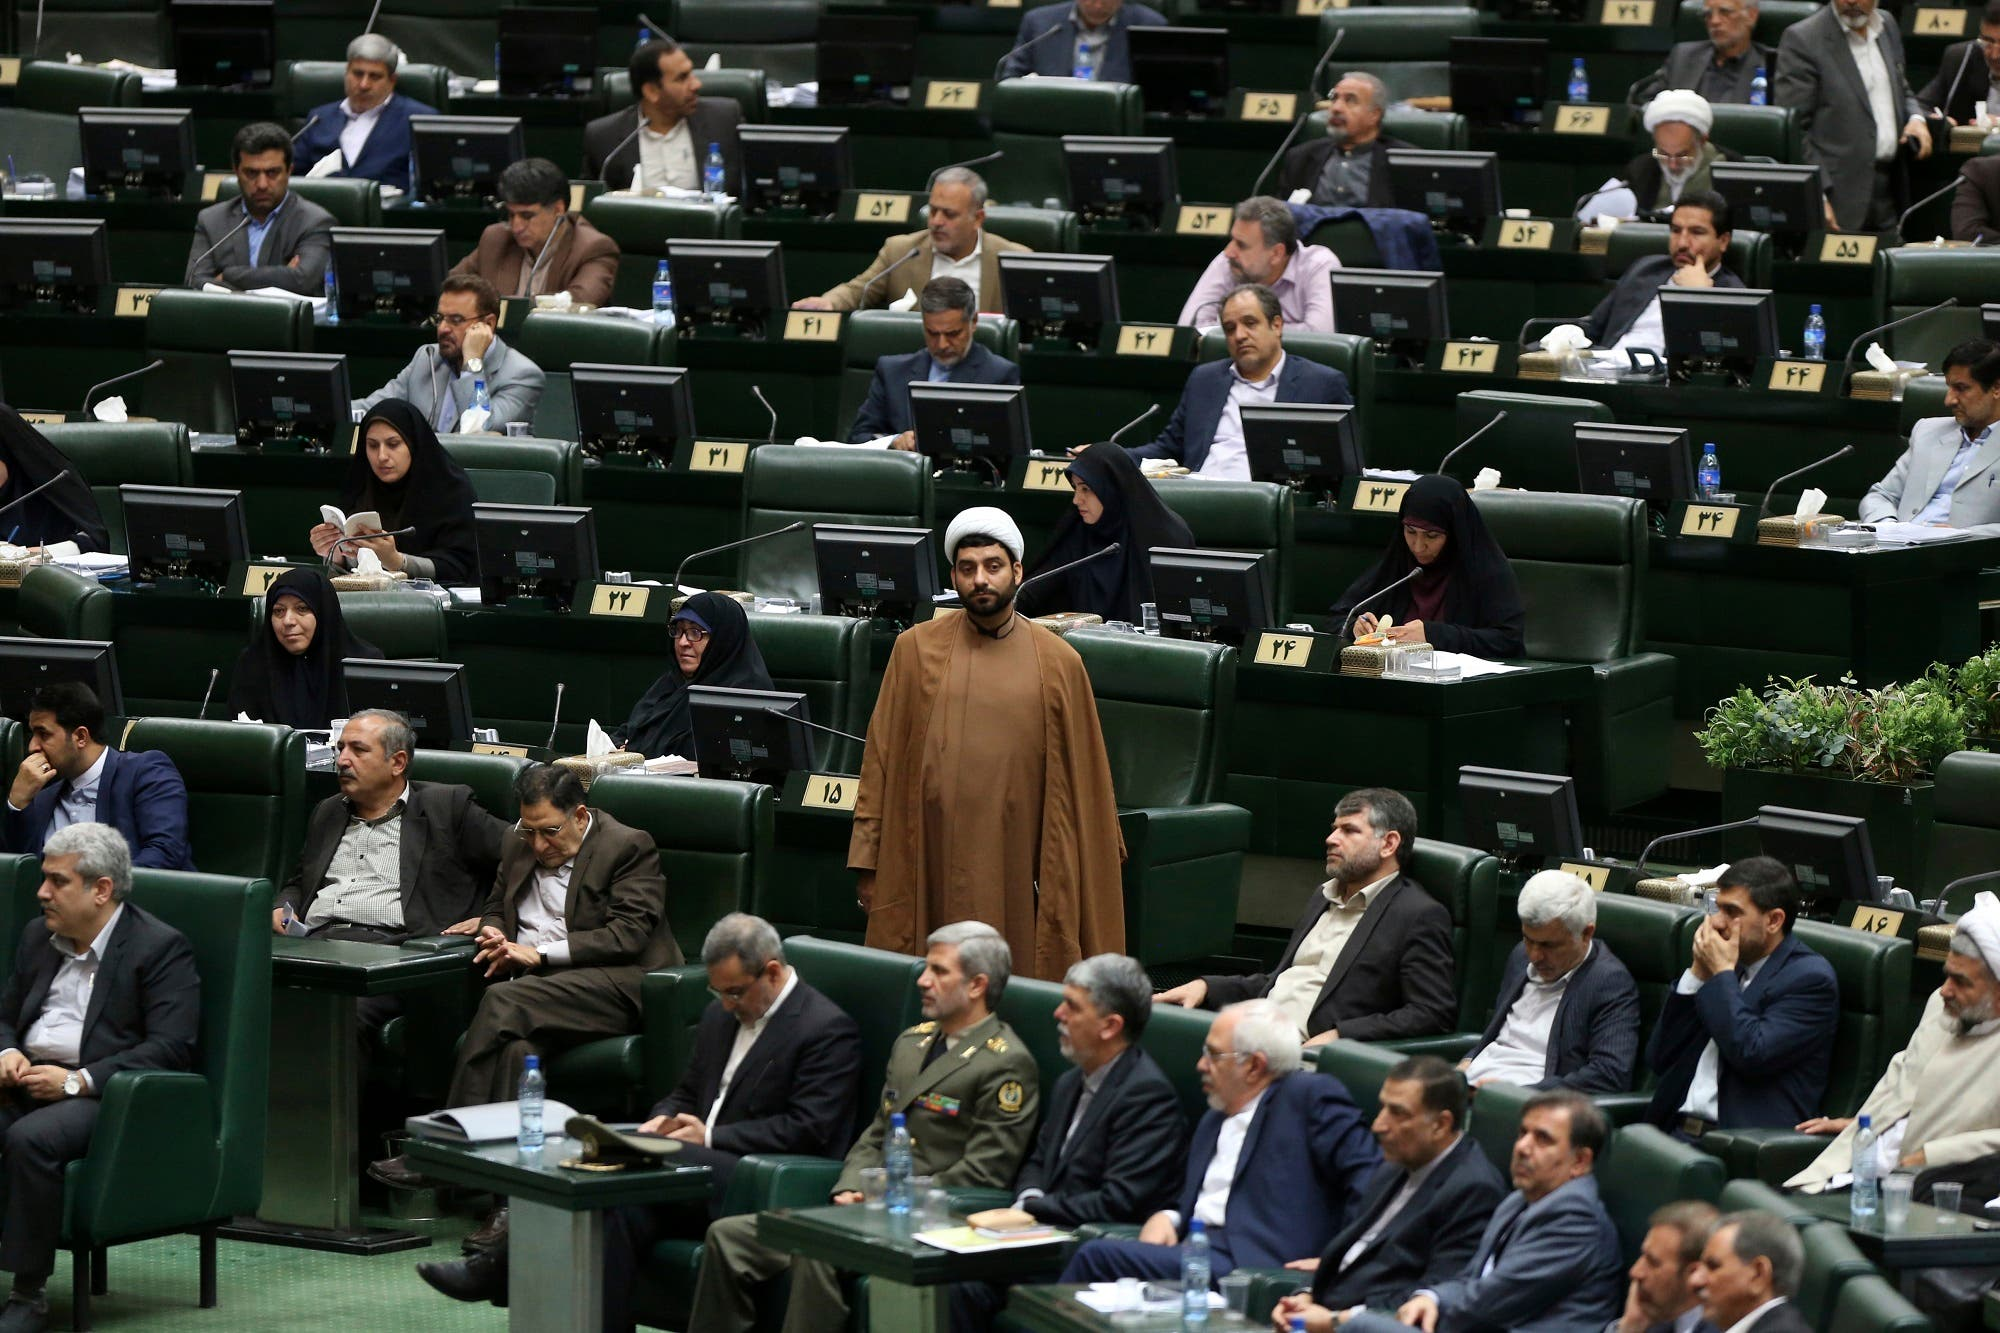 Iranian cleric lawmaker Ahad Azadikhah, center, during a session of parliament in Tehran, on Aug. 15, 2017. (AP)